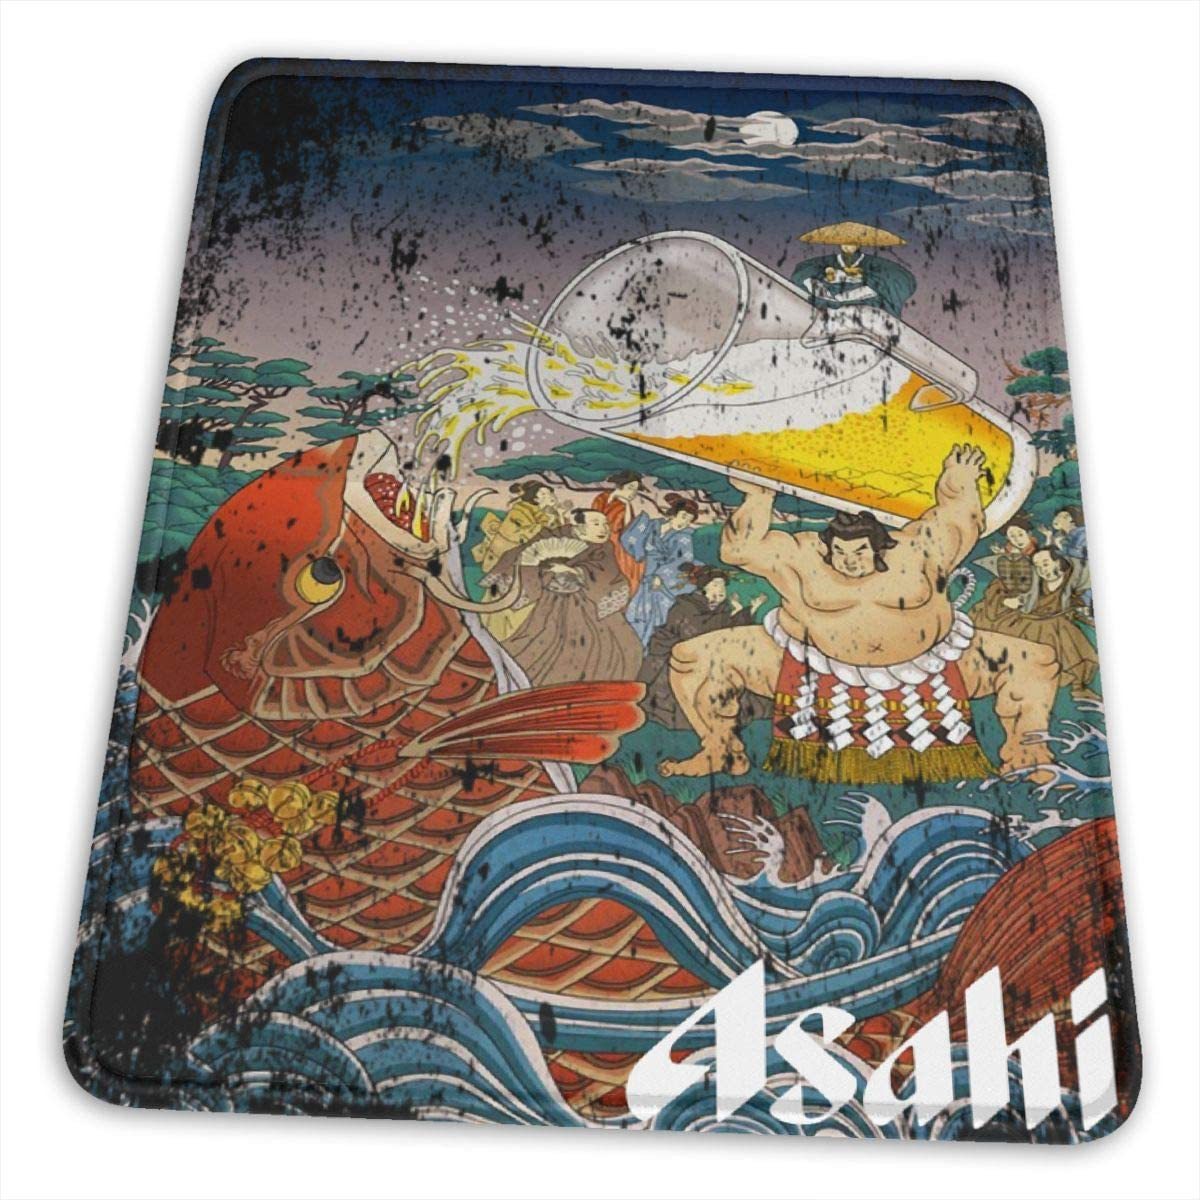 Anime & Sumo - Vintage Japanese Beer Poster Design Premium Hemming The Esports Mouse Pad Office Accessories Desk Decor Slip Rubber Mouse Pad